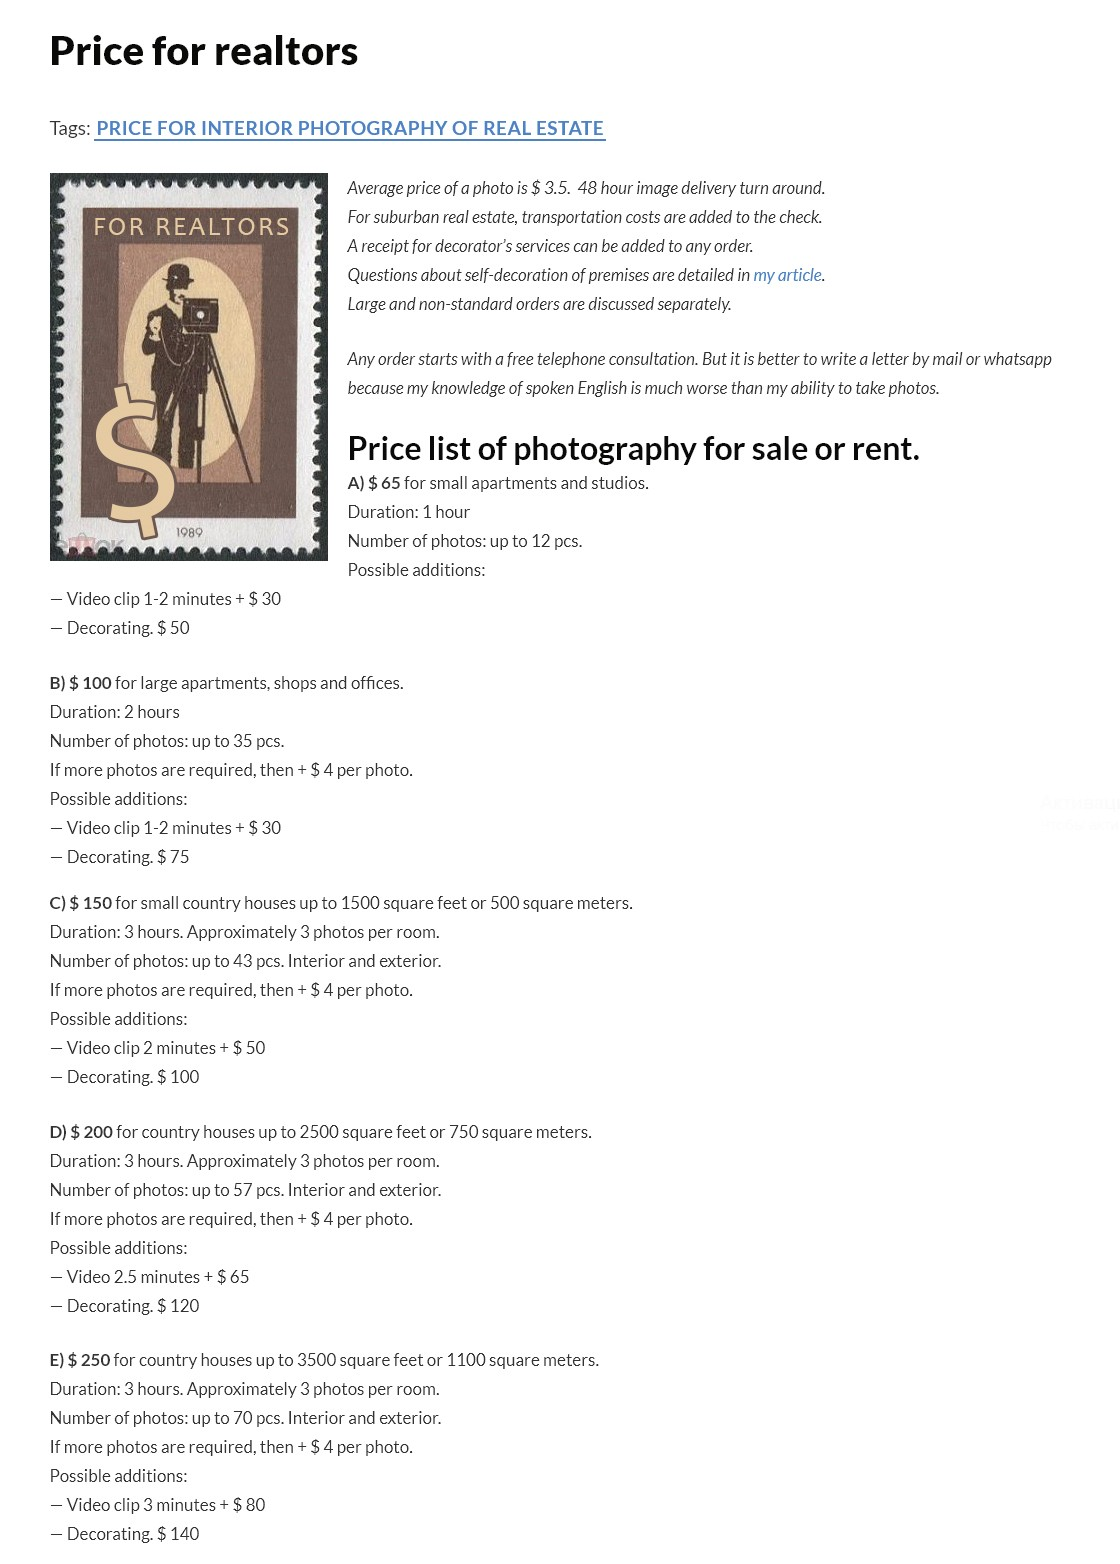 Price for interior photography of real estate for realtors and real estate owners